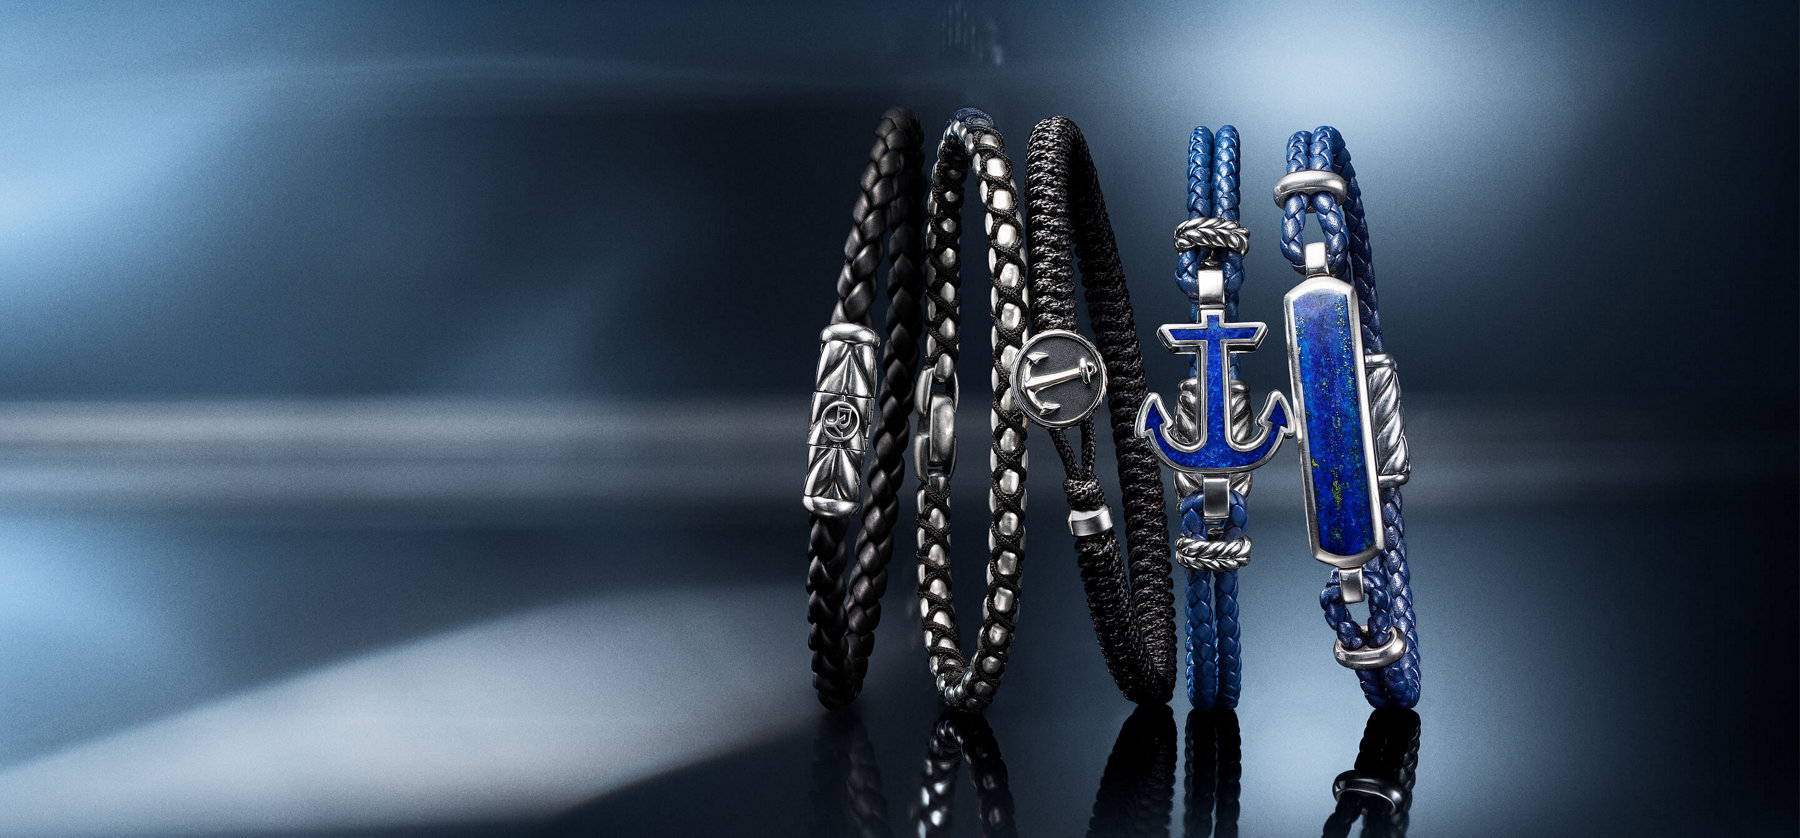 A horizontal row of David Yurman men's Chevron, Chain, Maritime® and Exotic Stone bracelets, in black rubber, black nylon or blue leather with sterling silver and lapis lazuli, on and in front of a blue background illuminated by rays of light.